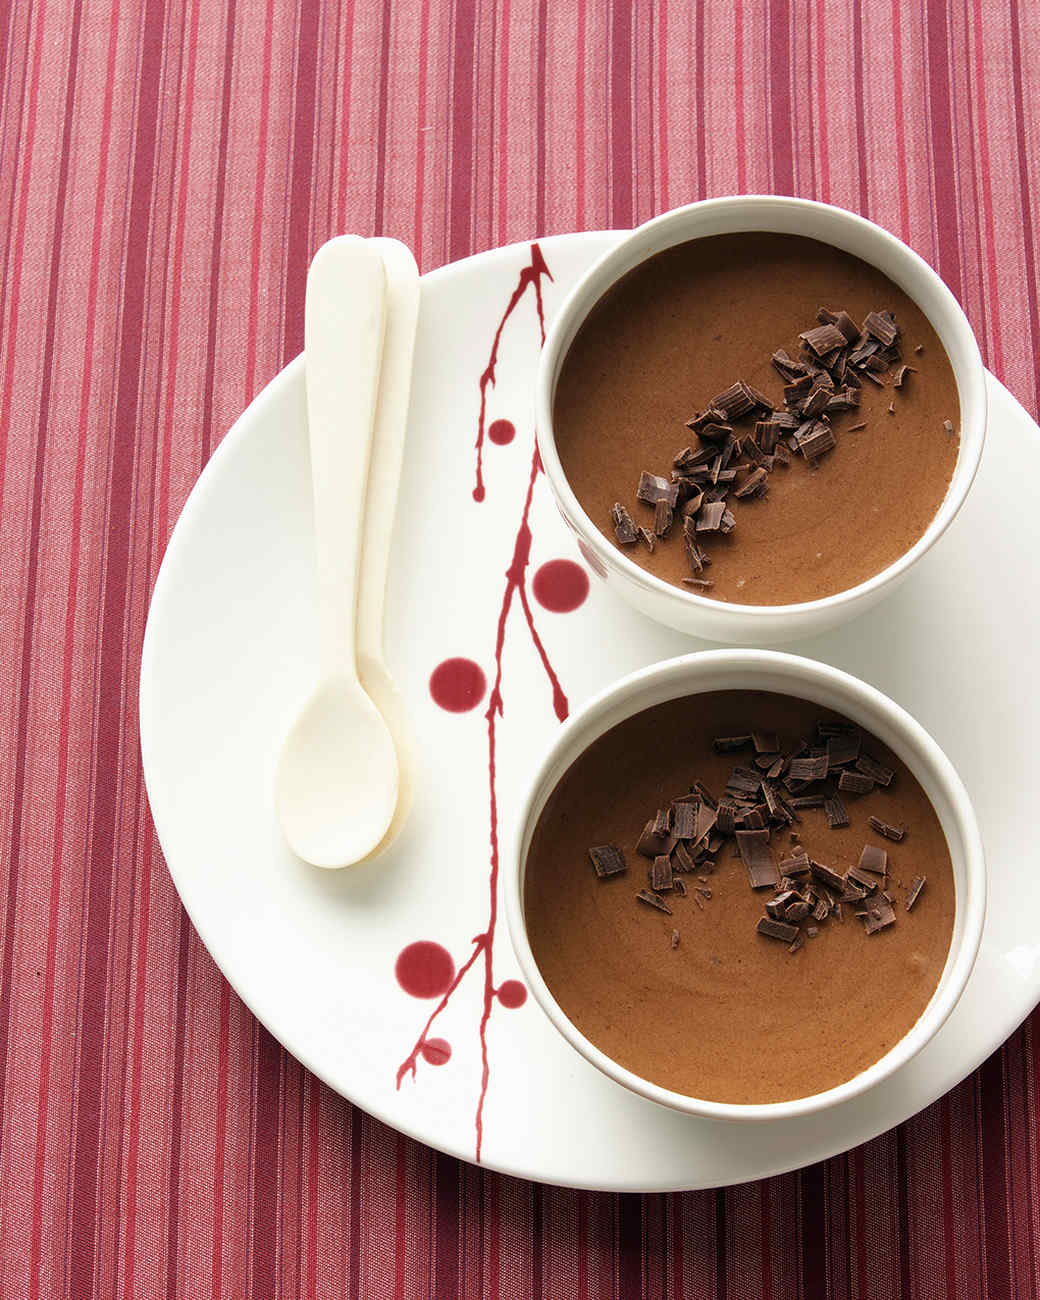 Chocolate Desserts for Valentine's Day | Martha Stewart